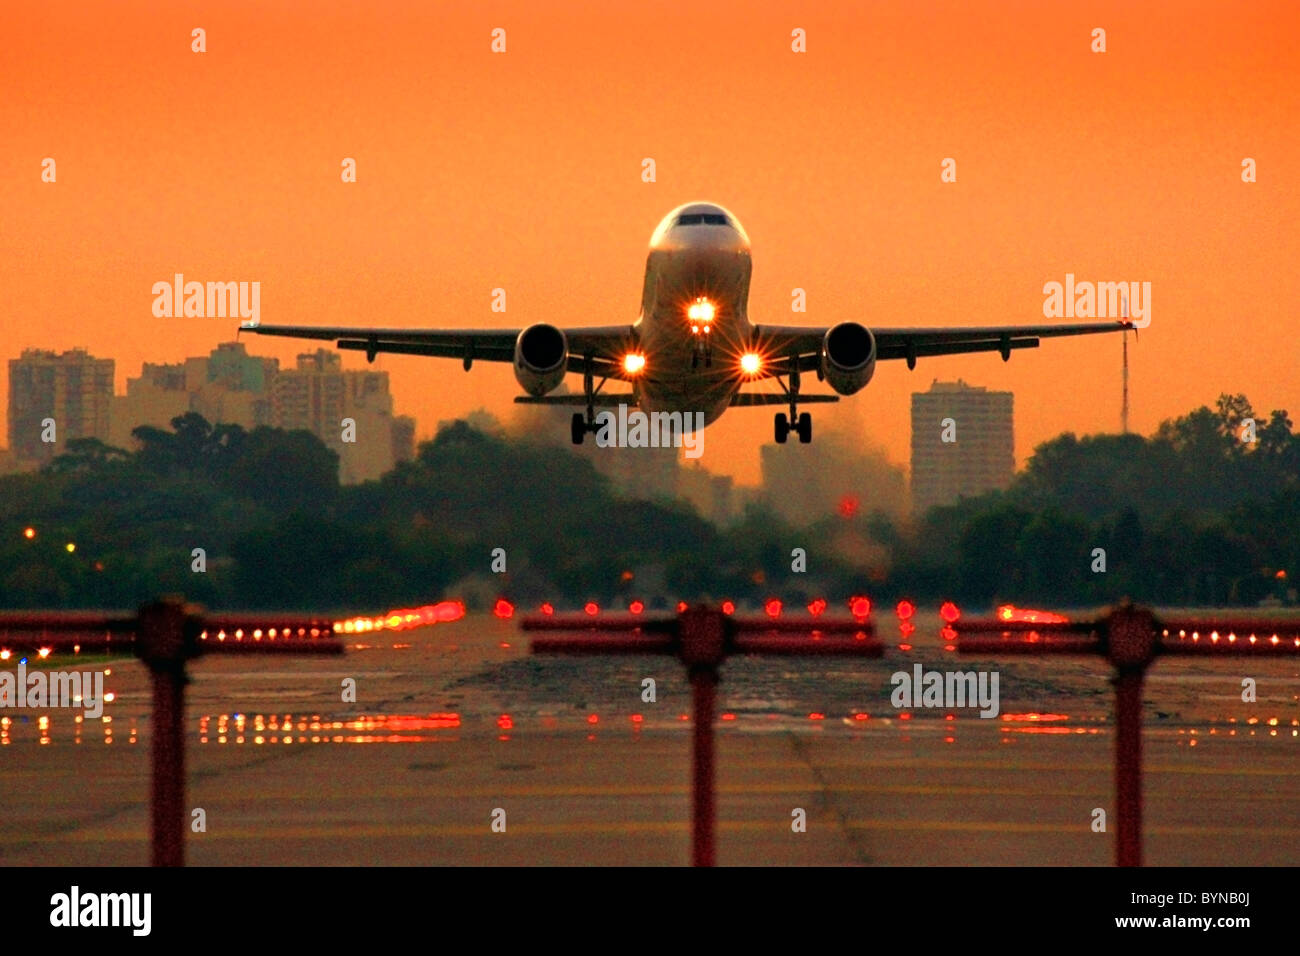 jet commercial airplane taking off the Jorge Newbery Airport, at sunset. - Stock Image